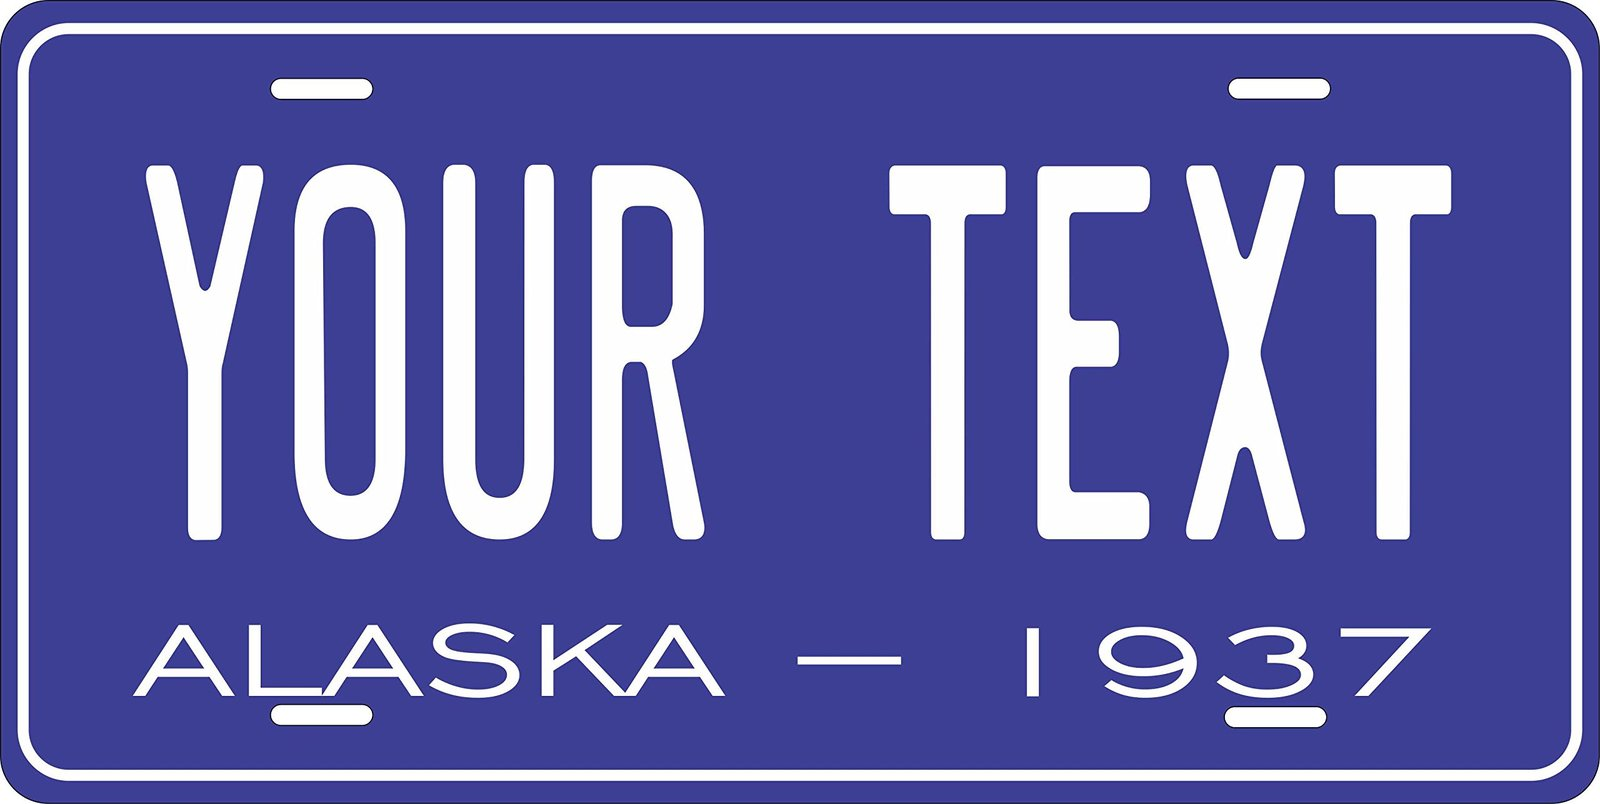 Alaska 1937 Personalized Tag Vehicle Car Auto License Plate